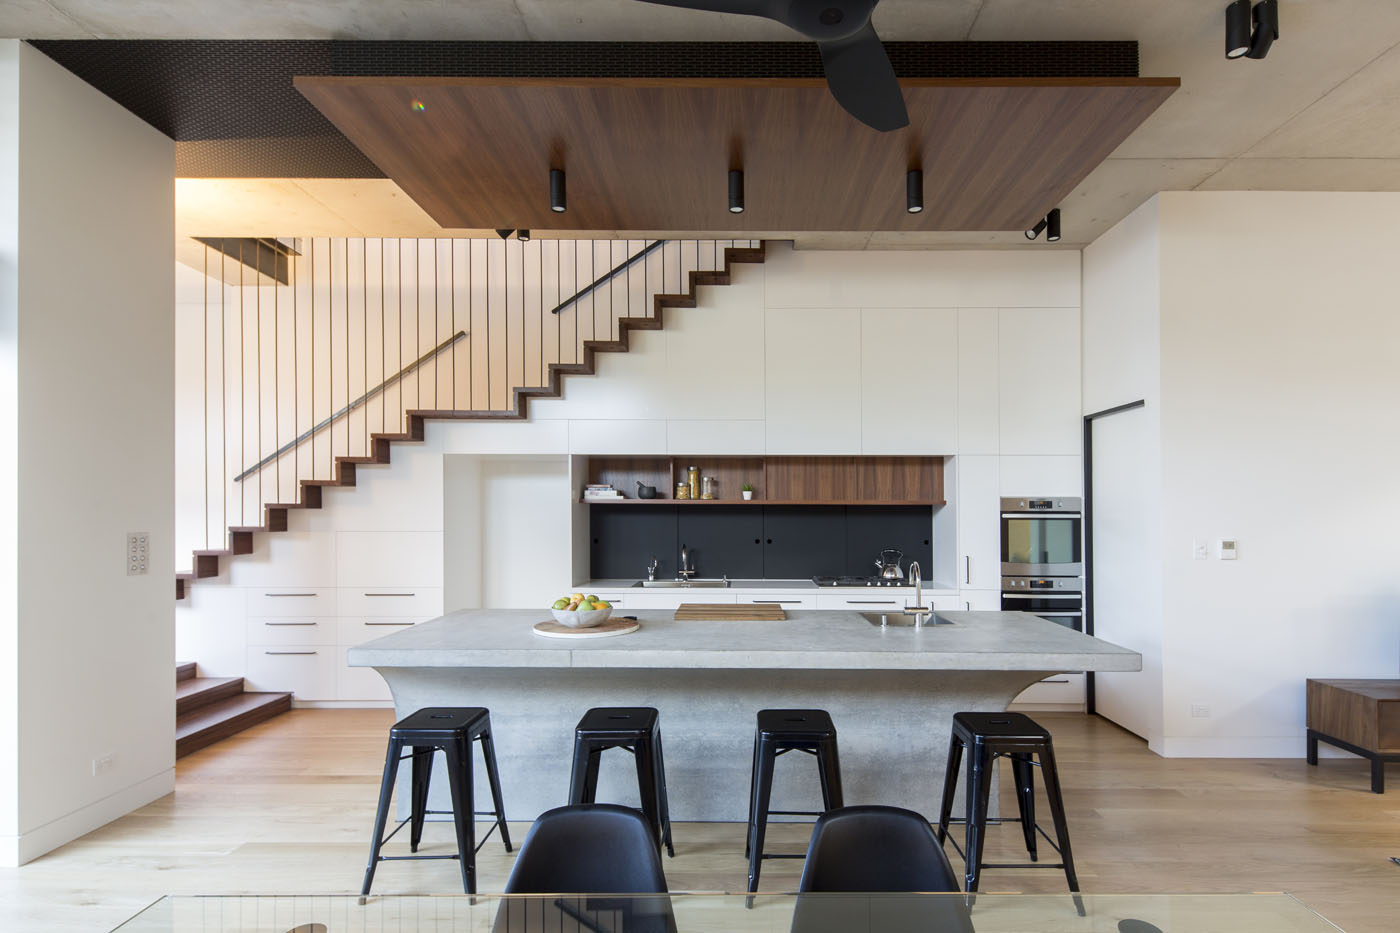 Sheppard Wilson House by Sydney award winning residential architecture office Sam Crawford Architects. Bespoke kitchen featuring concrete bench.